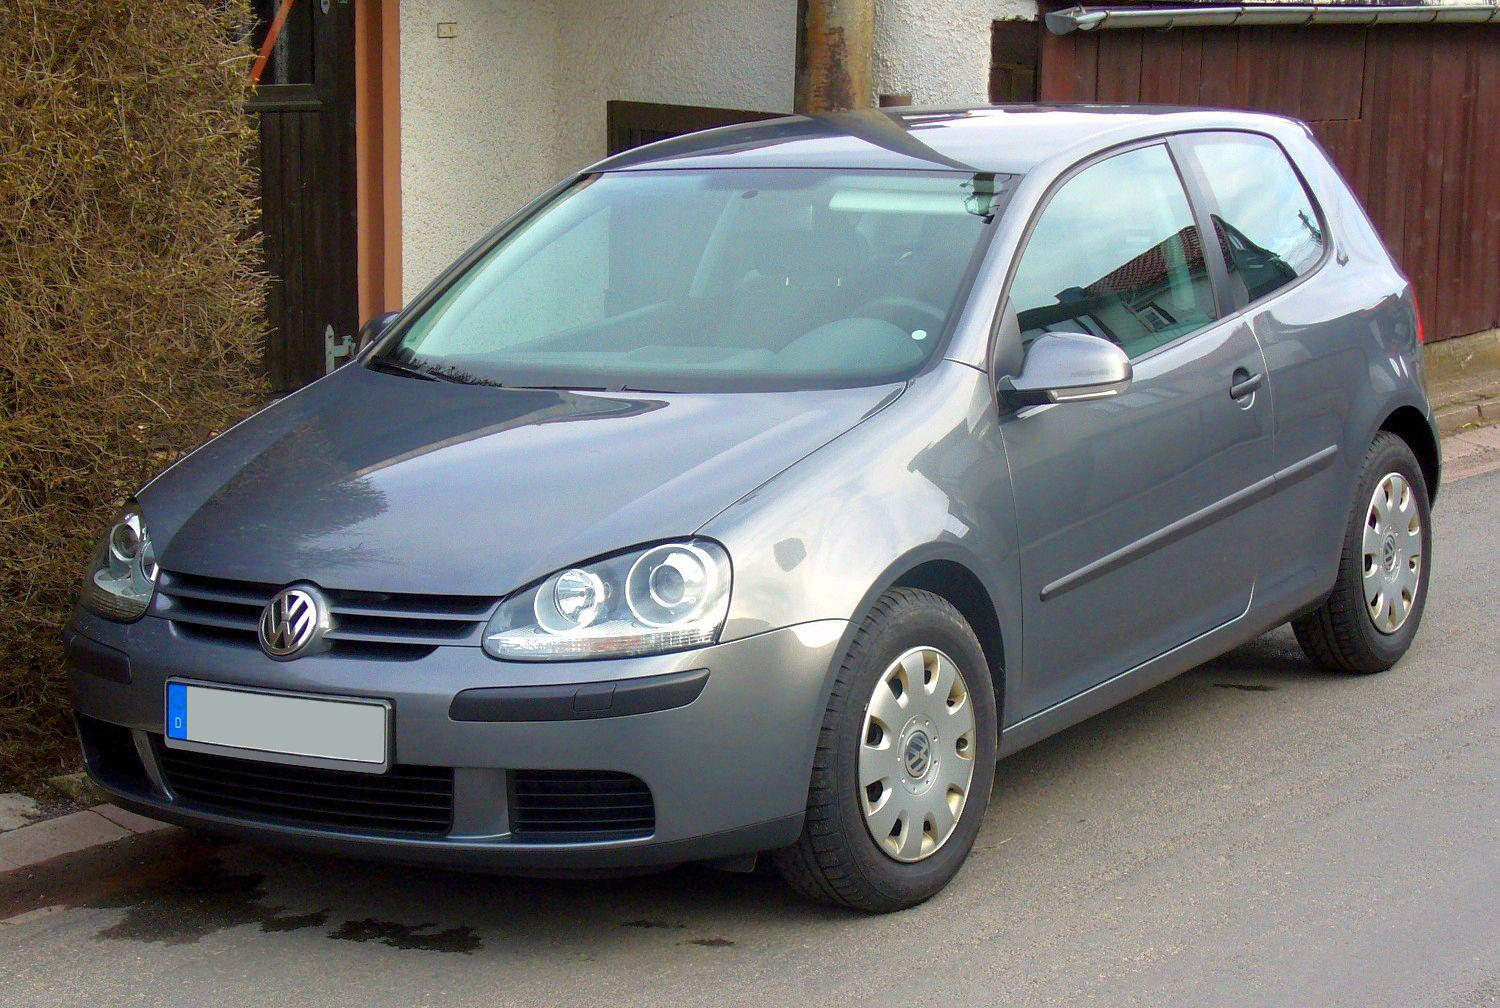 volkswagen golf v wikipedia den frie encyklop di. Black Bedroom Furniture Sets. Home Design Ideas